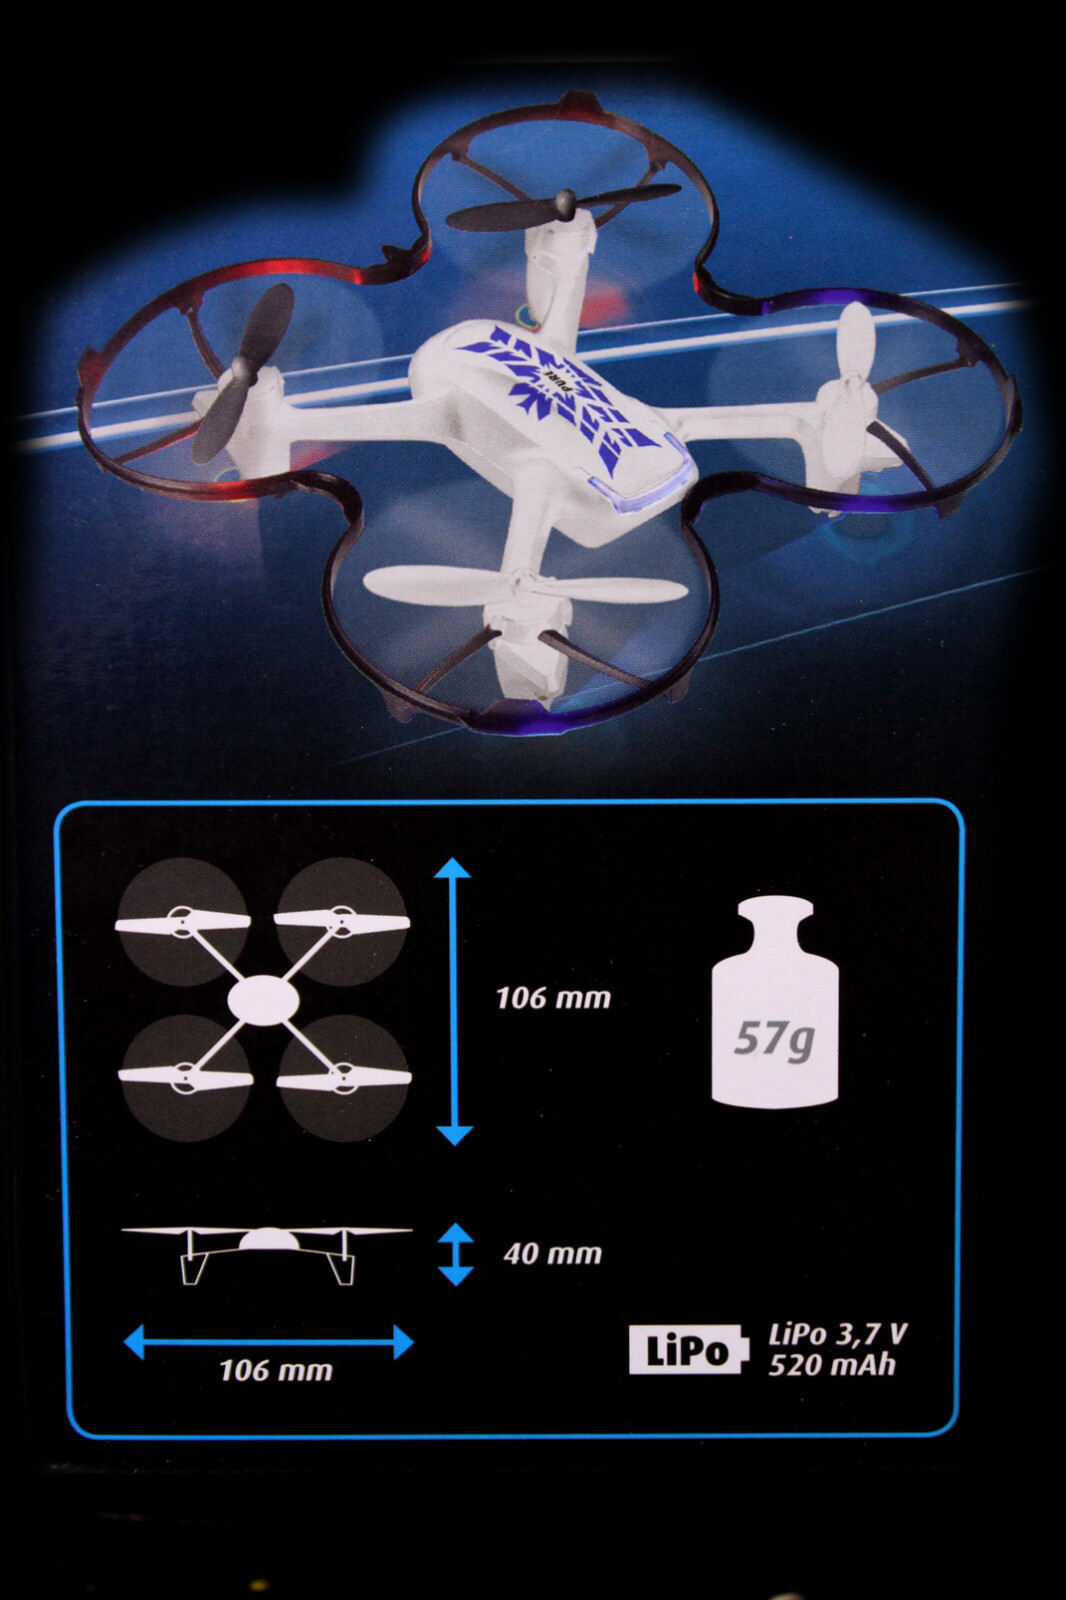 REVELL 23921 Pure RC Quadrocopter 2.4 GHz Höhenkontrolle LICHT Helikopter Heli